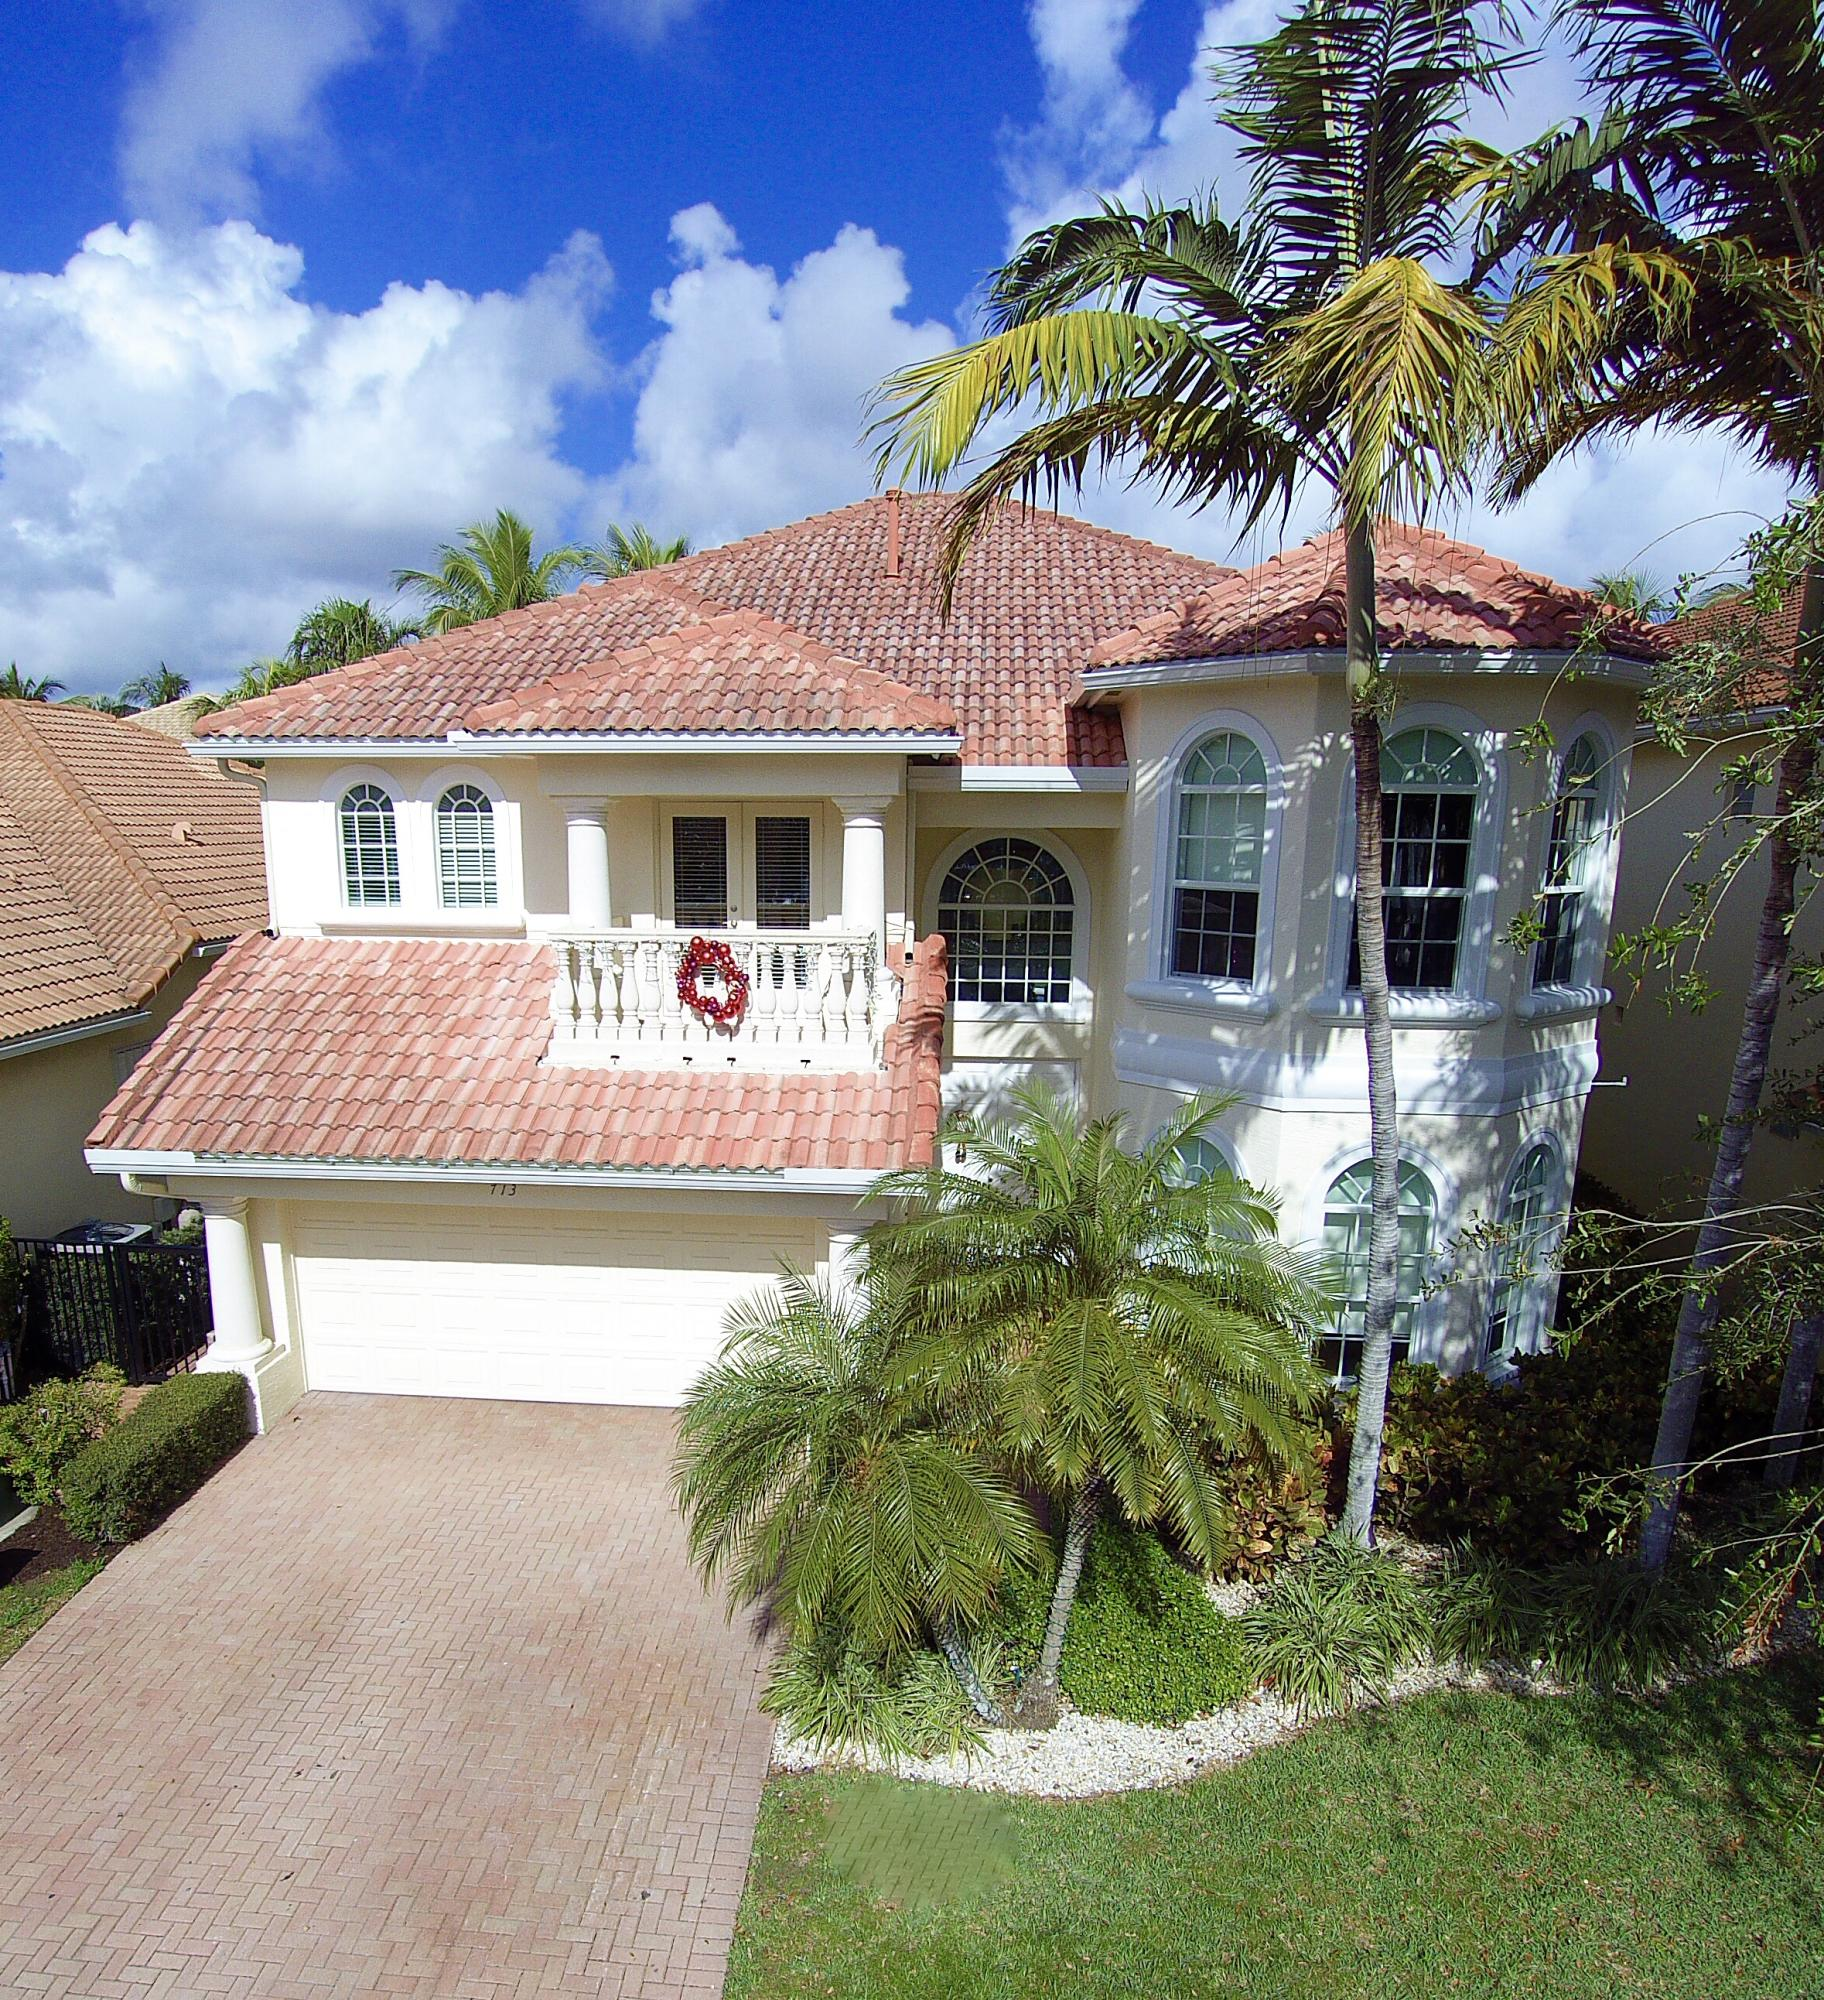 713 Maritime Way, North Palm Beach, Florida 33410, 5 Bedrooms Bedrooms, ,4.1 BathroomsBathrooms,A,Single family,Maritime Way,RX-10507704